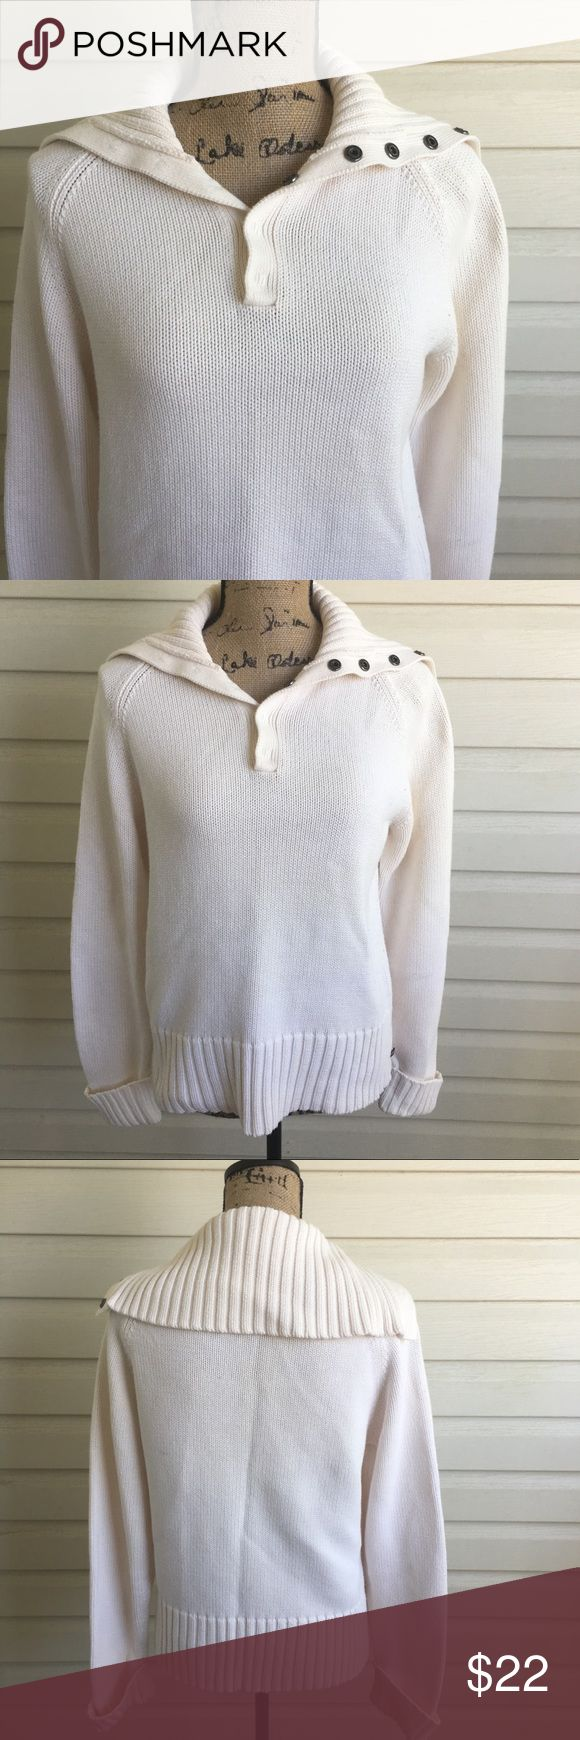 Polo Jeans White Wide Colared Sweater In excellent condition! Open button wide collar. Size XL. I'm a speedy shipper and we have a smoke free home! Measurements upon request. I'm always open to reasonable offers. polo jeans co. by Ralph Lauren Sweaters